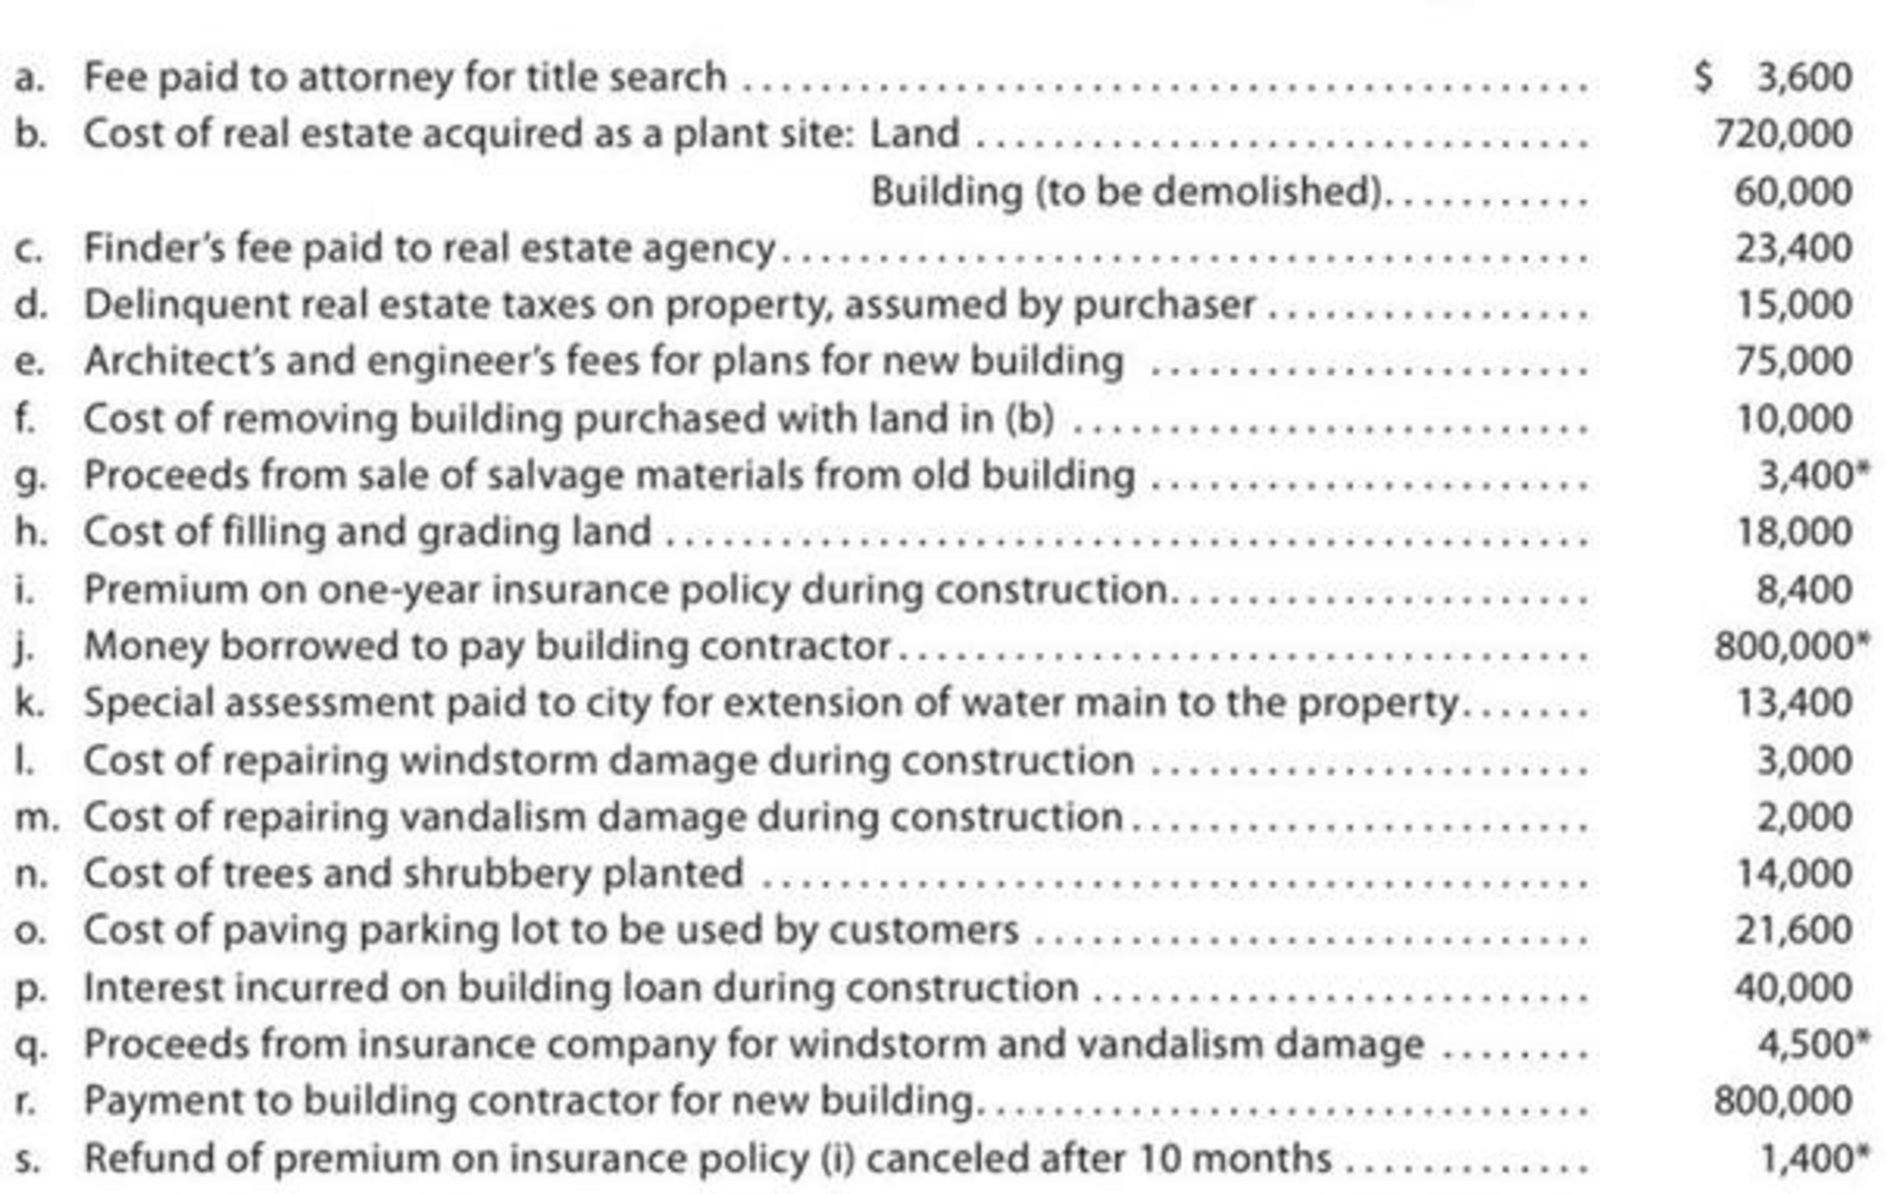 Chapter 10, Problem 1PB, The following payments and receipts are related to land, land improvements, and buildings acquired , example  1